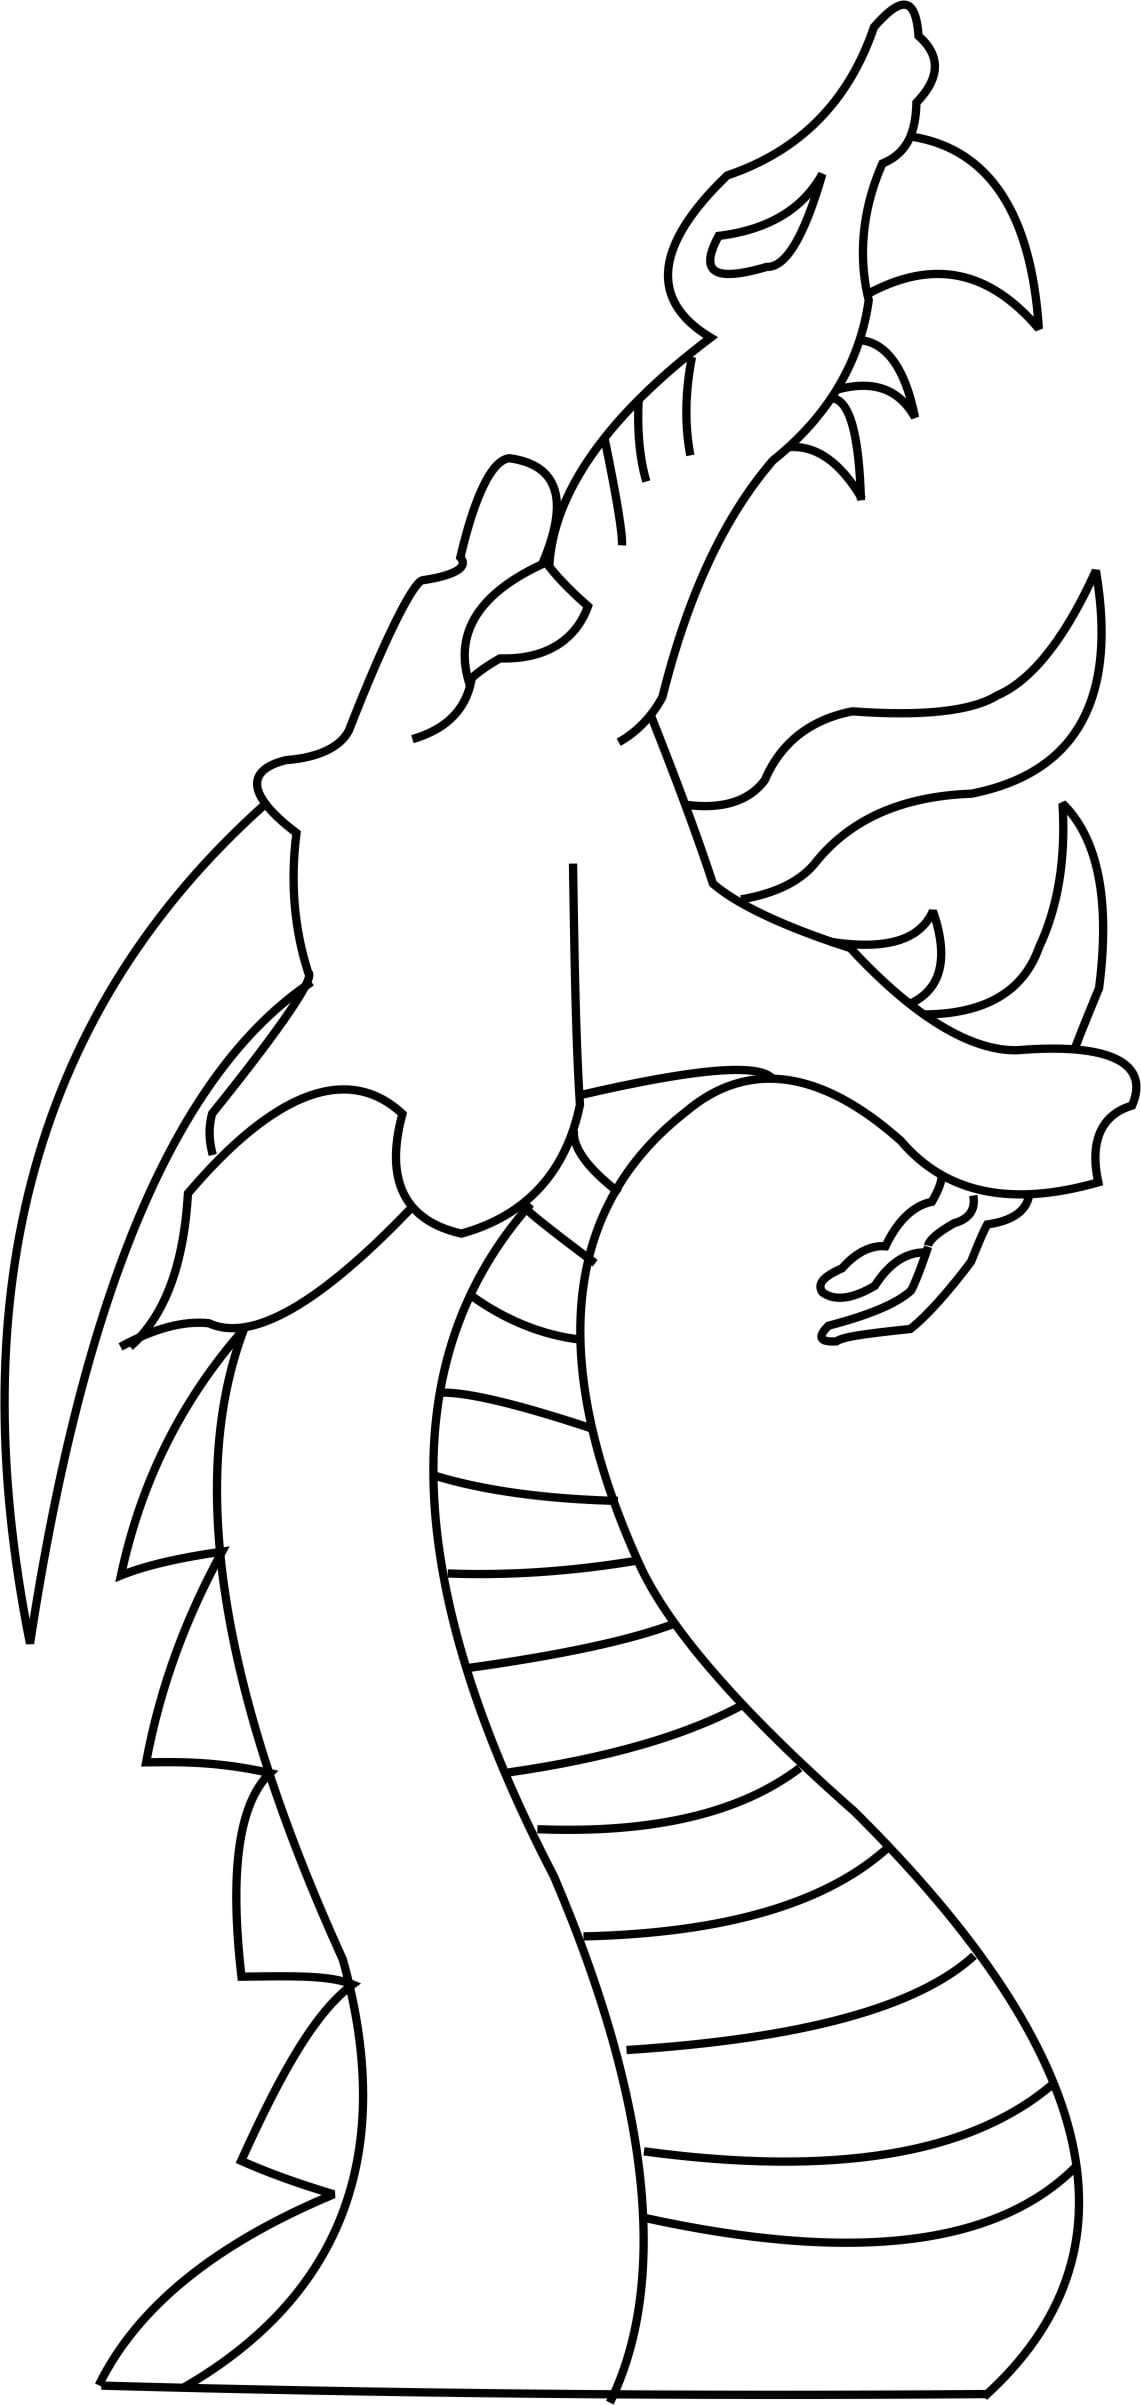 image result for cardboard dragon head template dragon